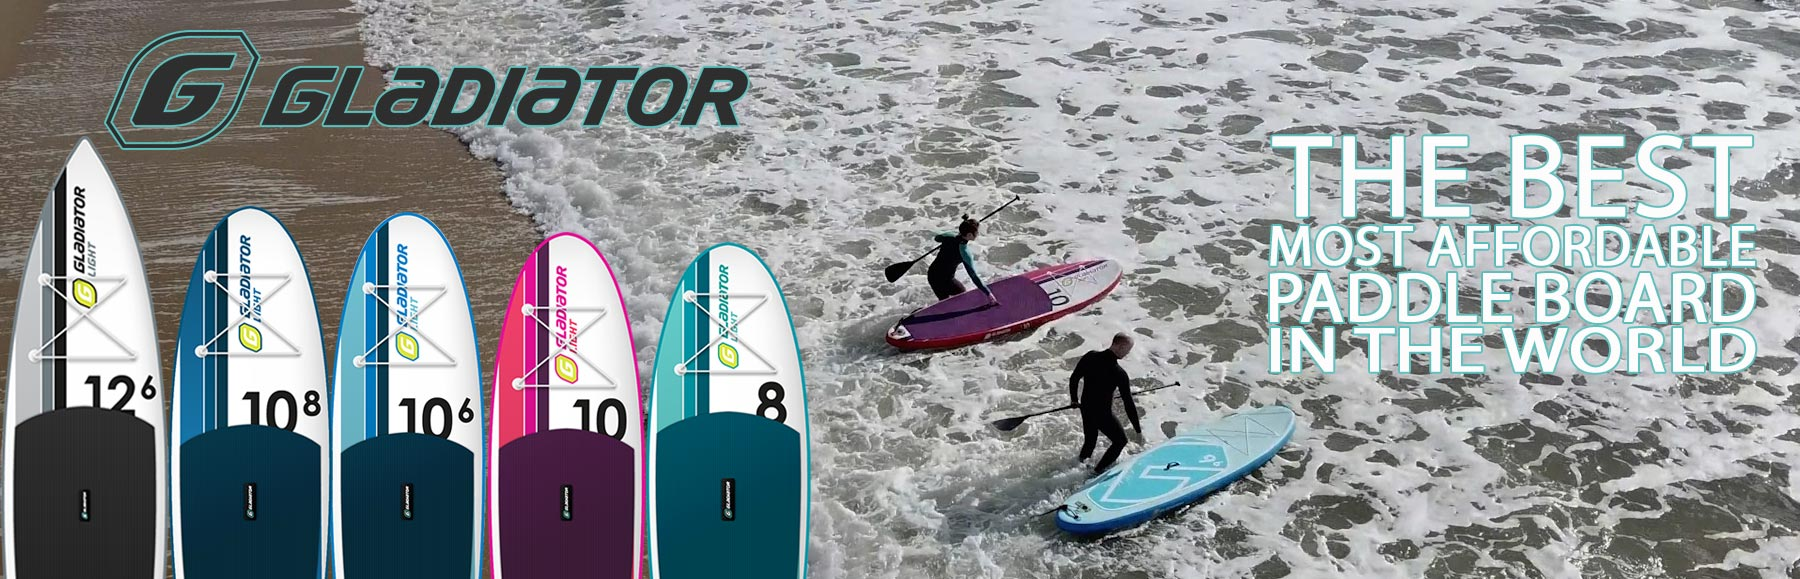 Gladiator Lite Paddle Board